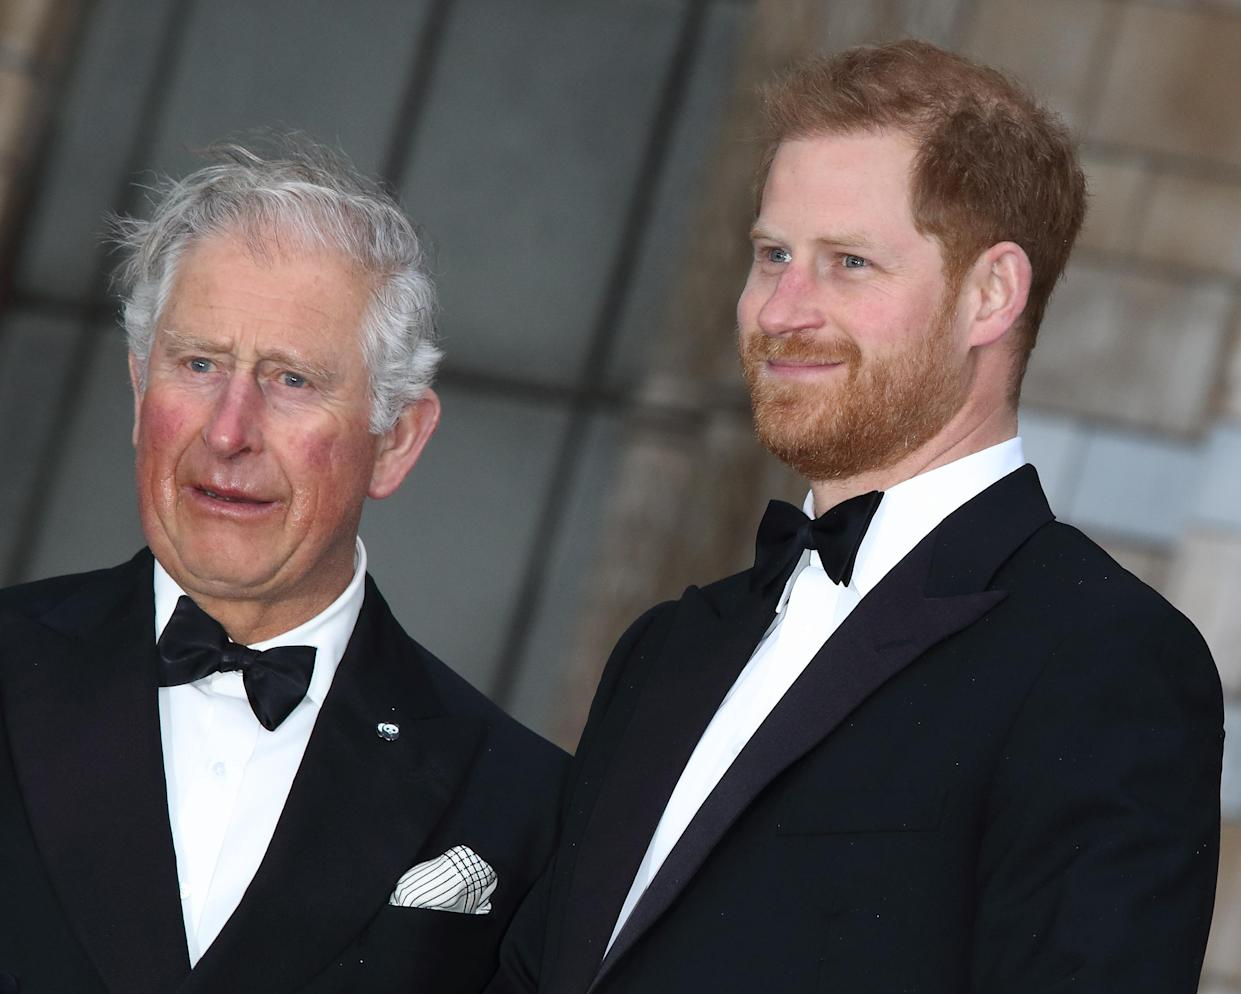 LONDON, UNITED KINGDOM - 2019/04/04: HRH Prince Harry with HRH Prince Charles at the World Premiere of Netflix's Our Planet at the Natural History Museum, Kensington. (Photo by Keith Mayhew/SOPA Images/LightRocket via Getty Images)